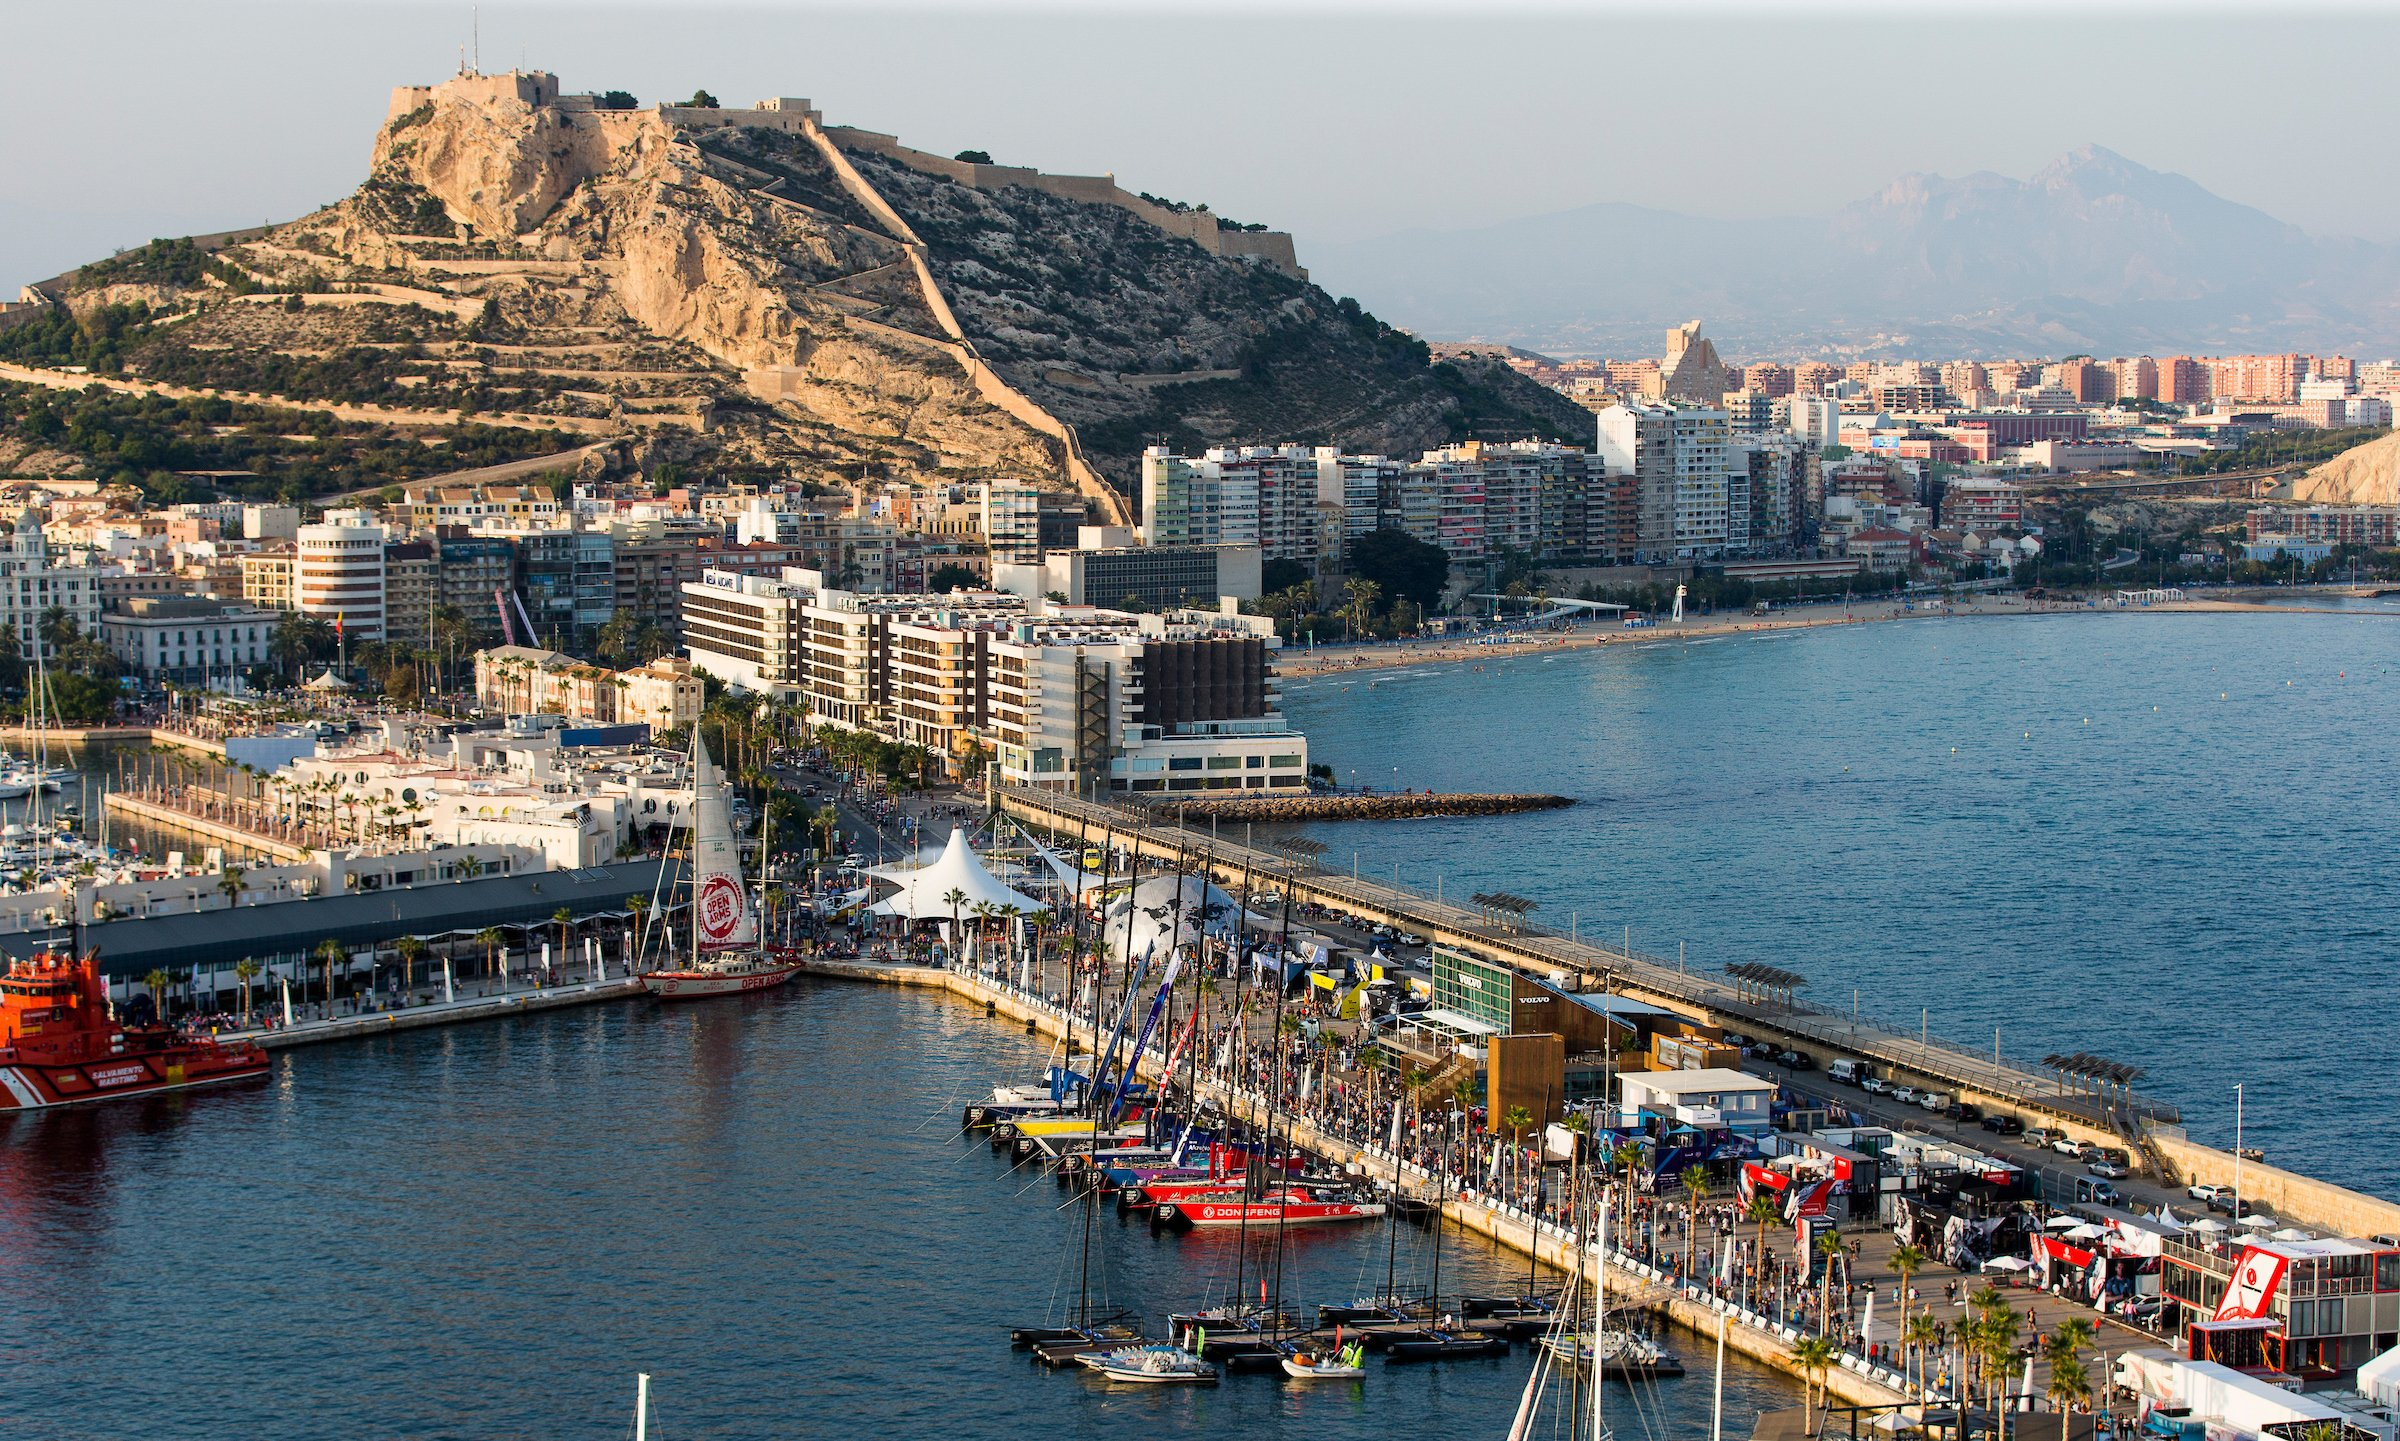 Alicante confirmed as final host city for The Ocean Race Europe